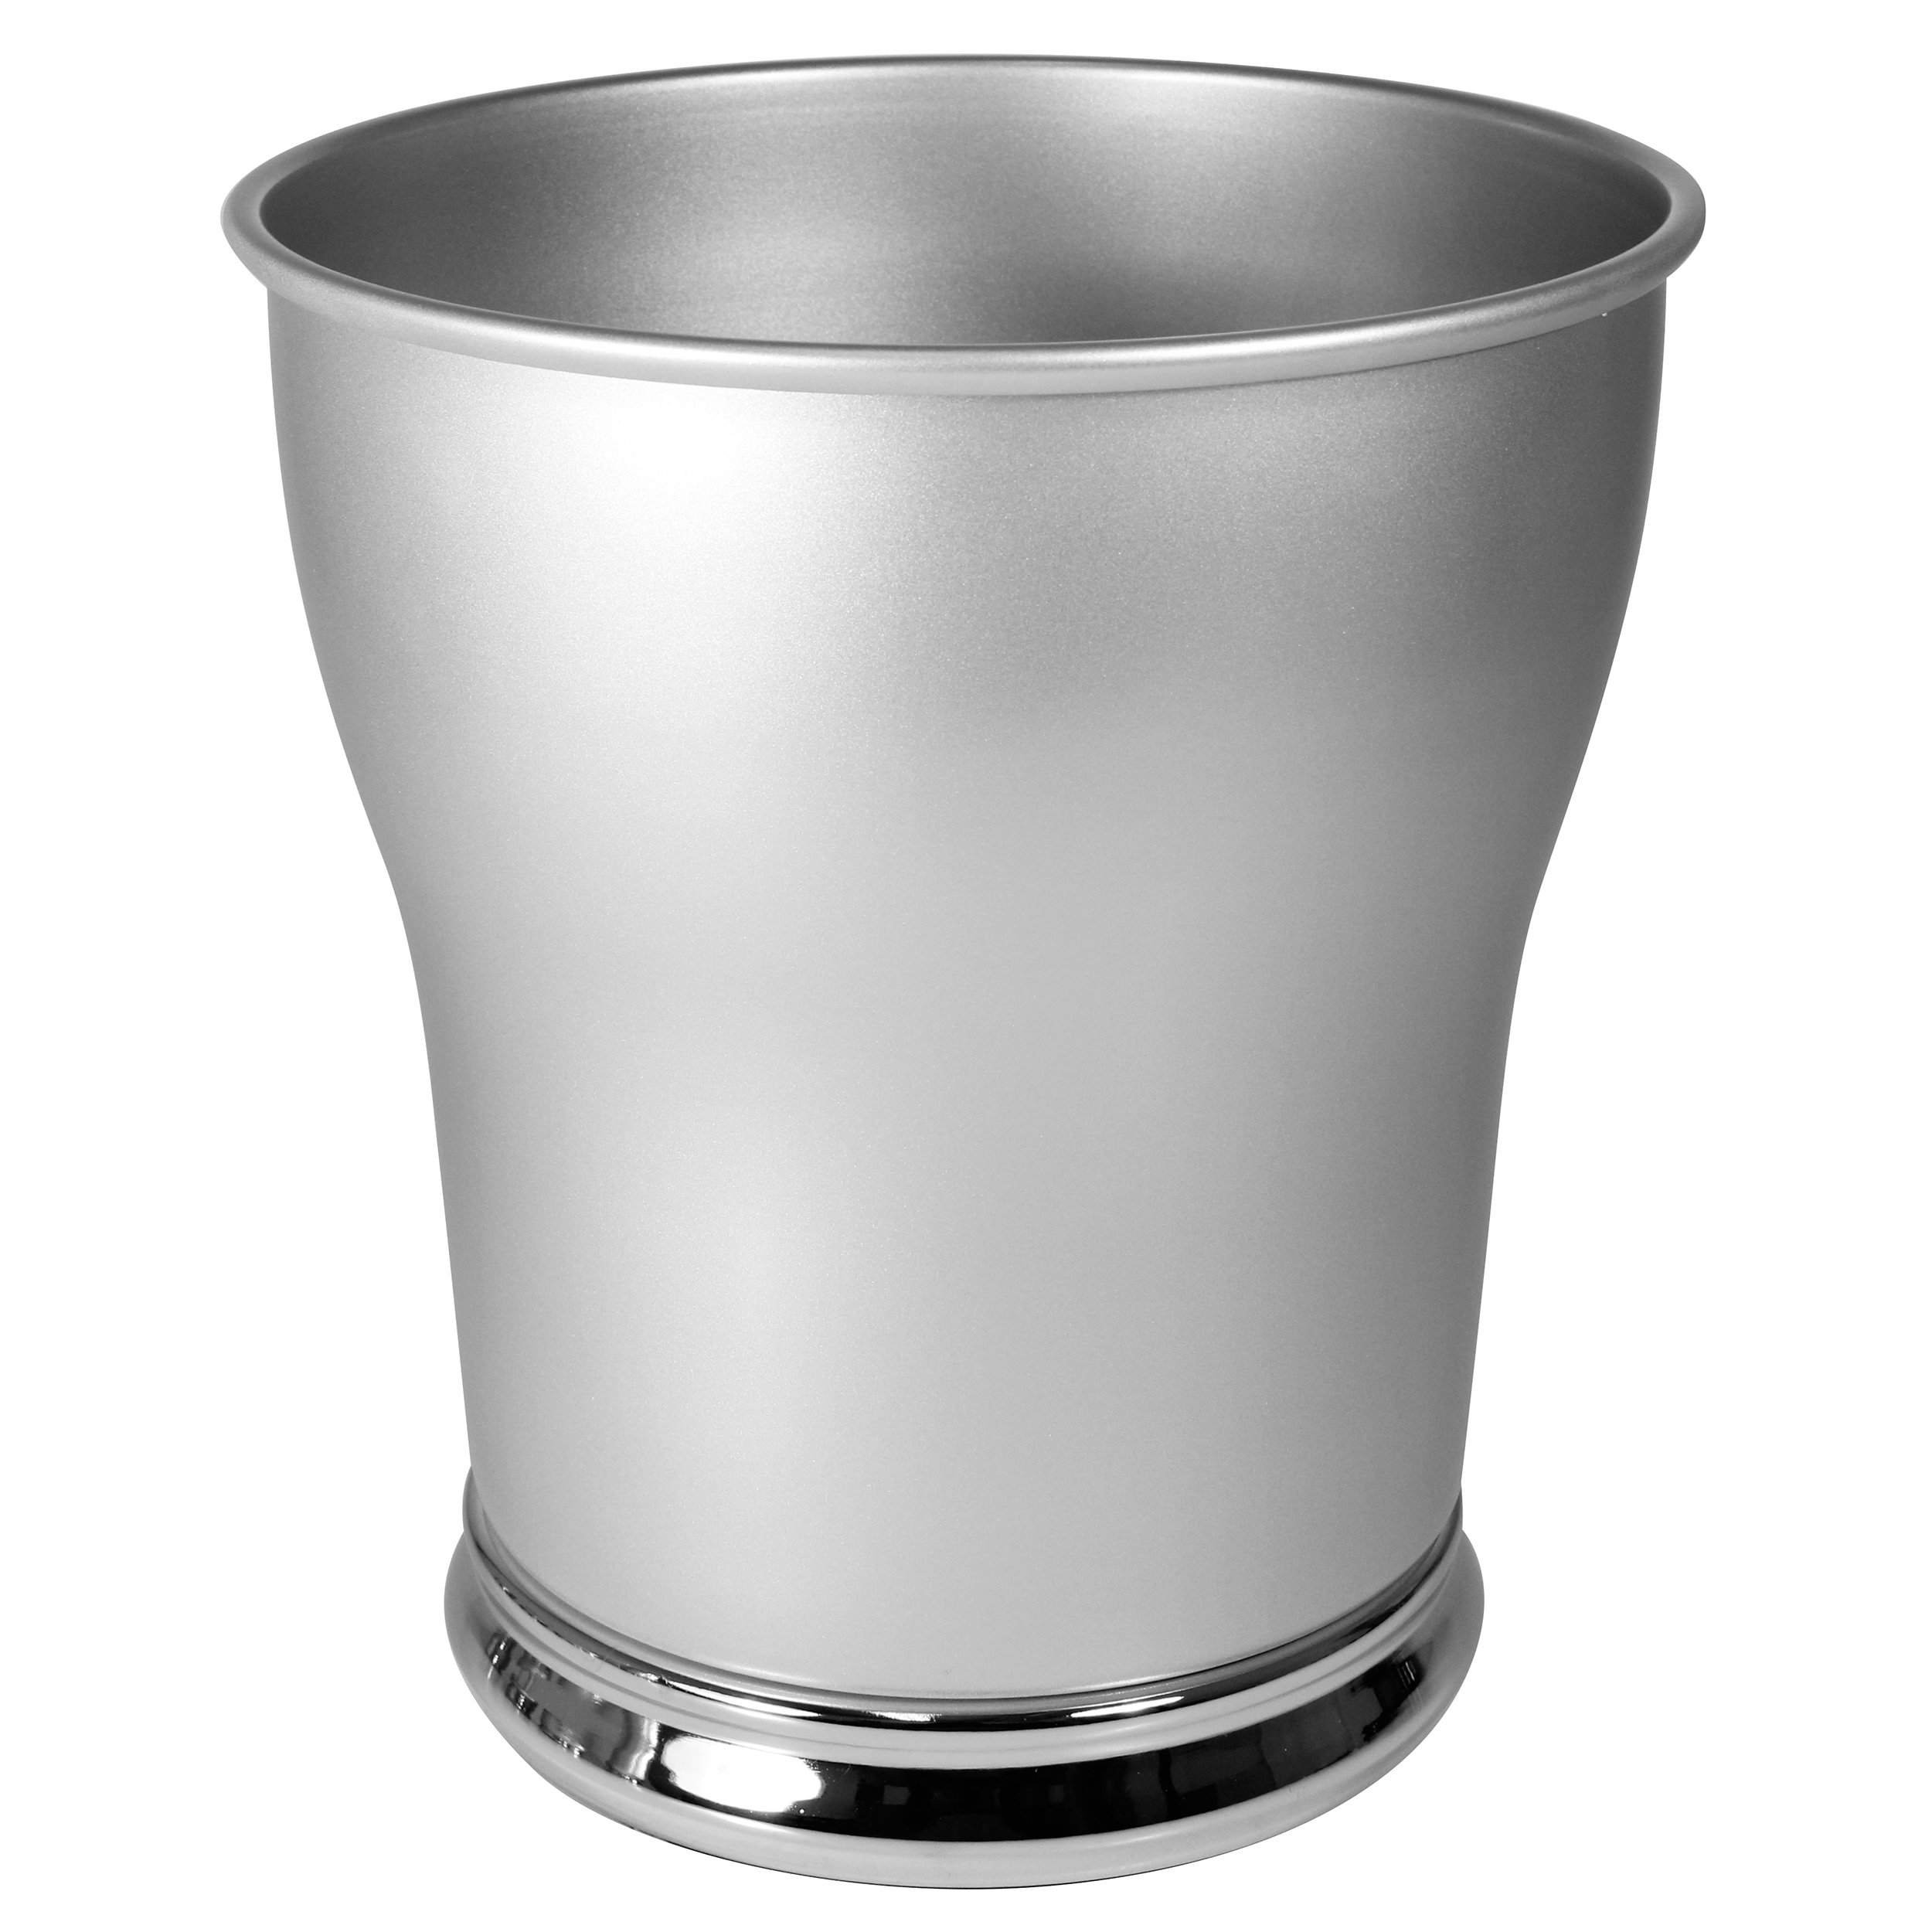 mDesign Decorative Round Small Trash Can Wastebasket, Garbage Container Bin for Bathrooms, Powder Rooms, Kitchens, Home Offices - Durable Steel with Pearl Silver Body and Chrome Base